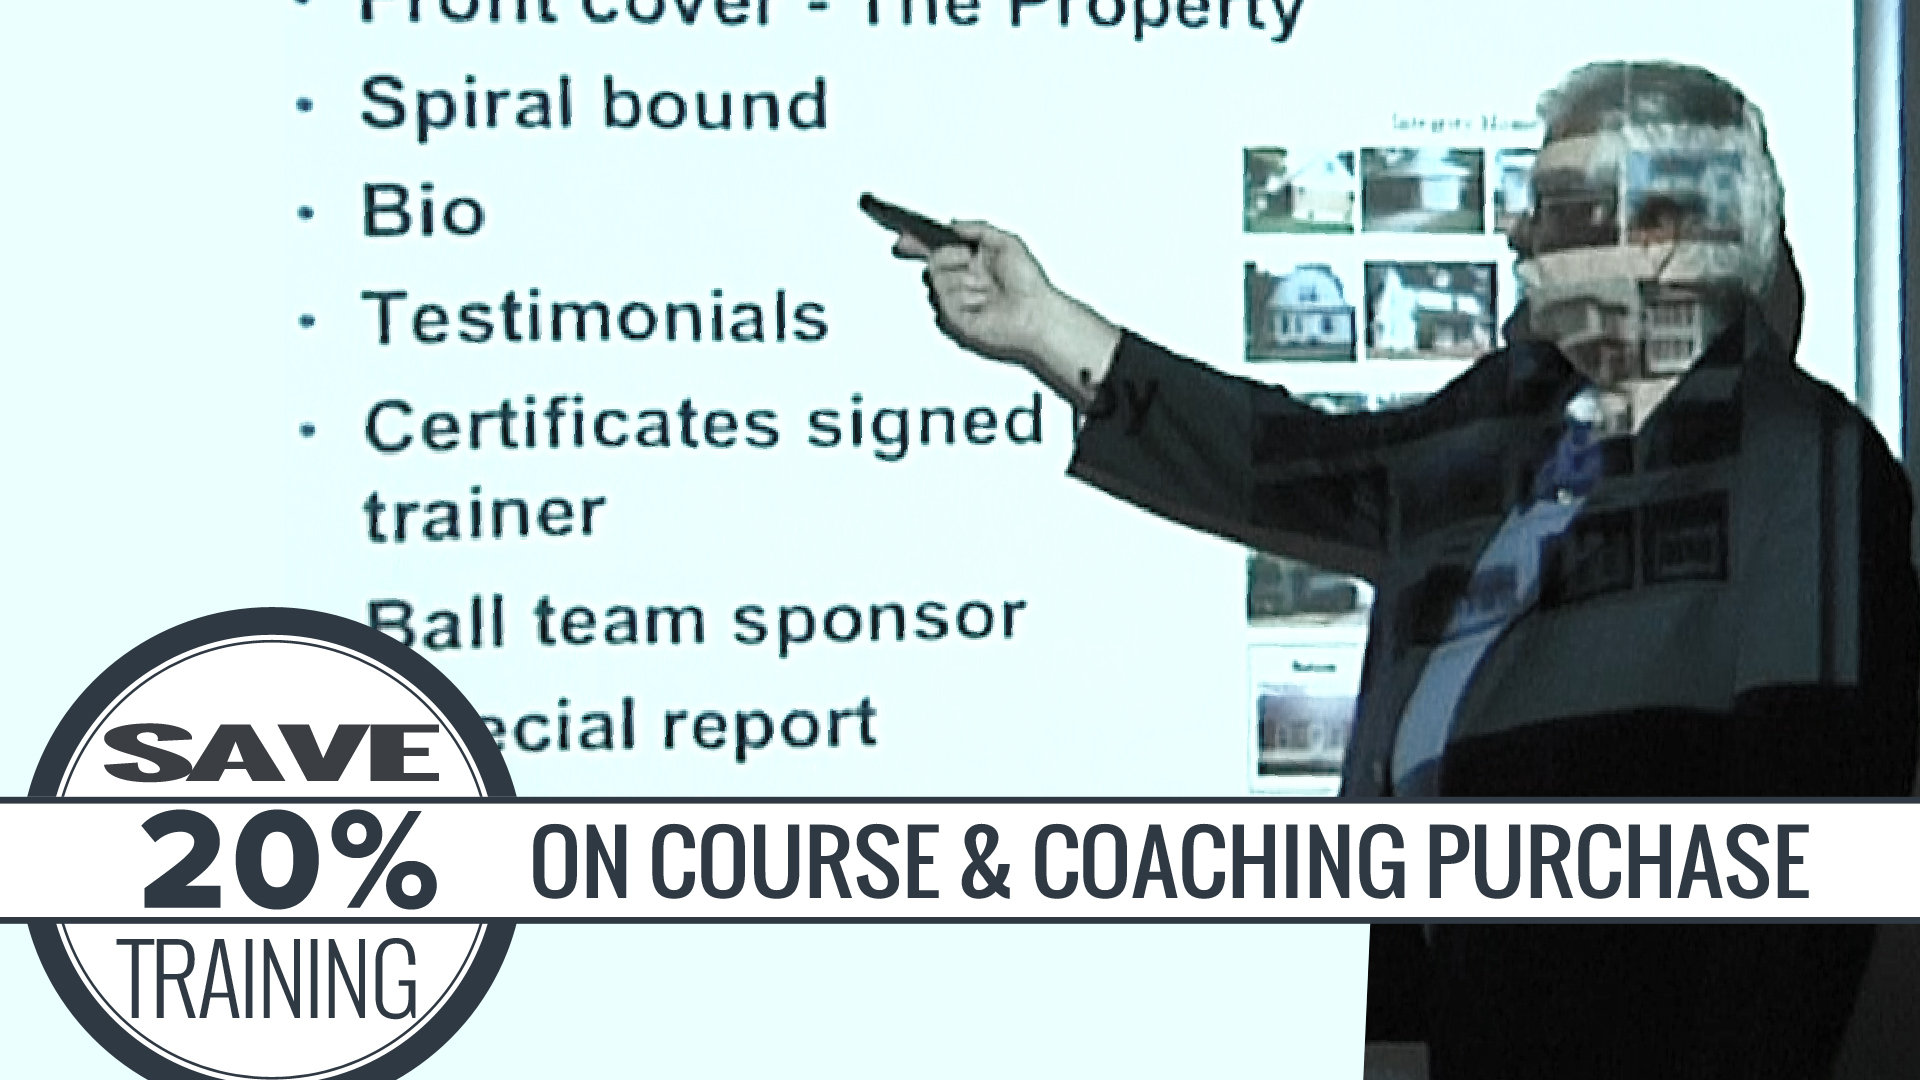 New improved REIA mastermind training course program and coaching-mentoring for real estate investors to invest in real estate.